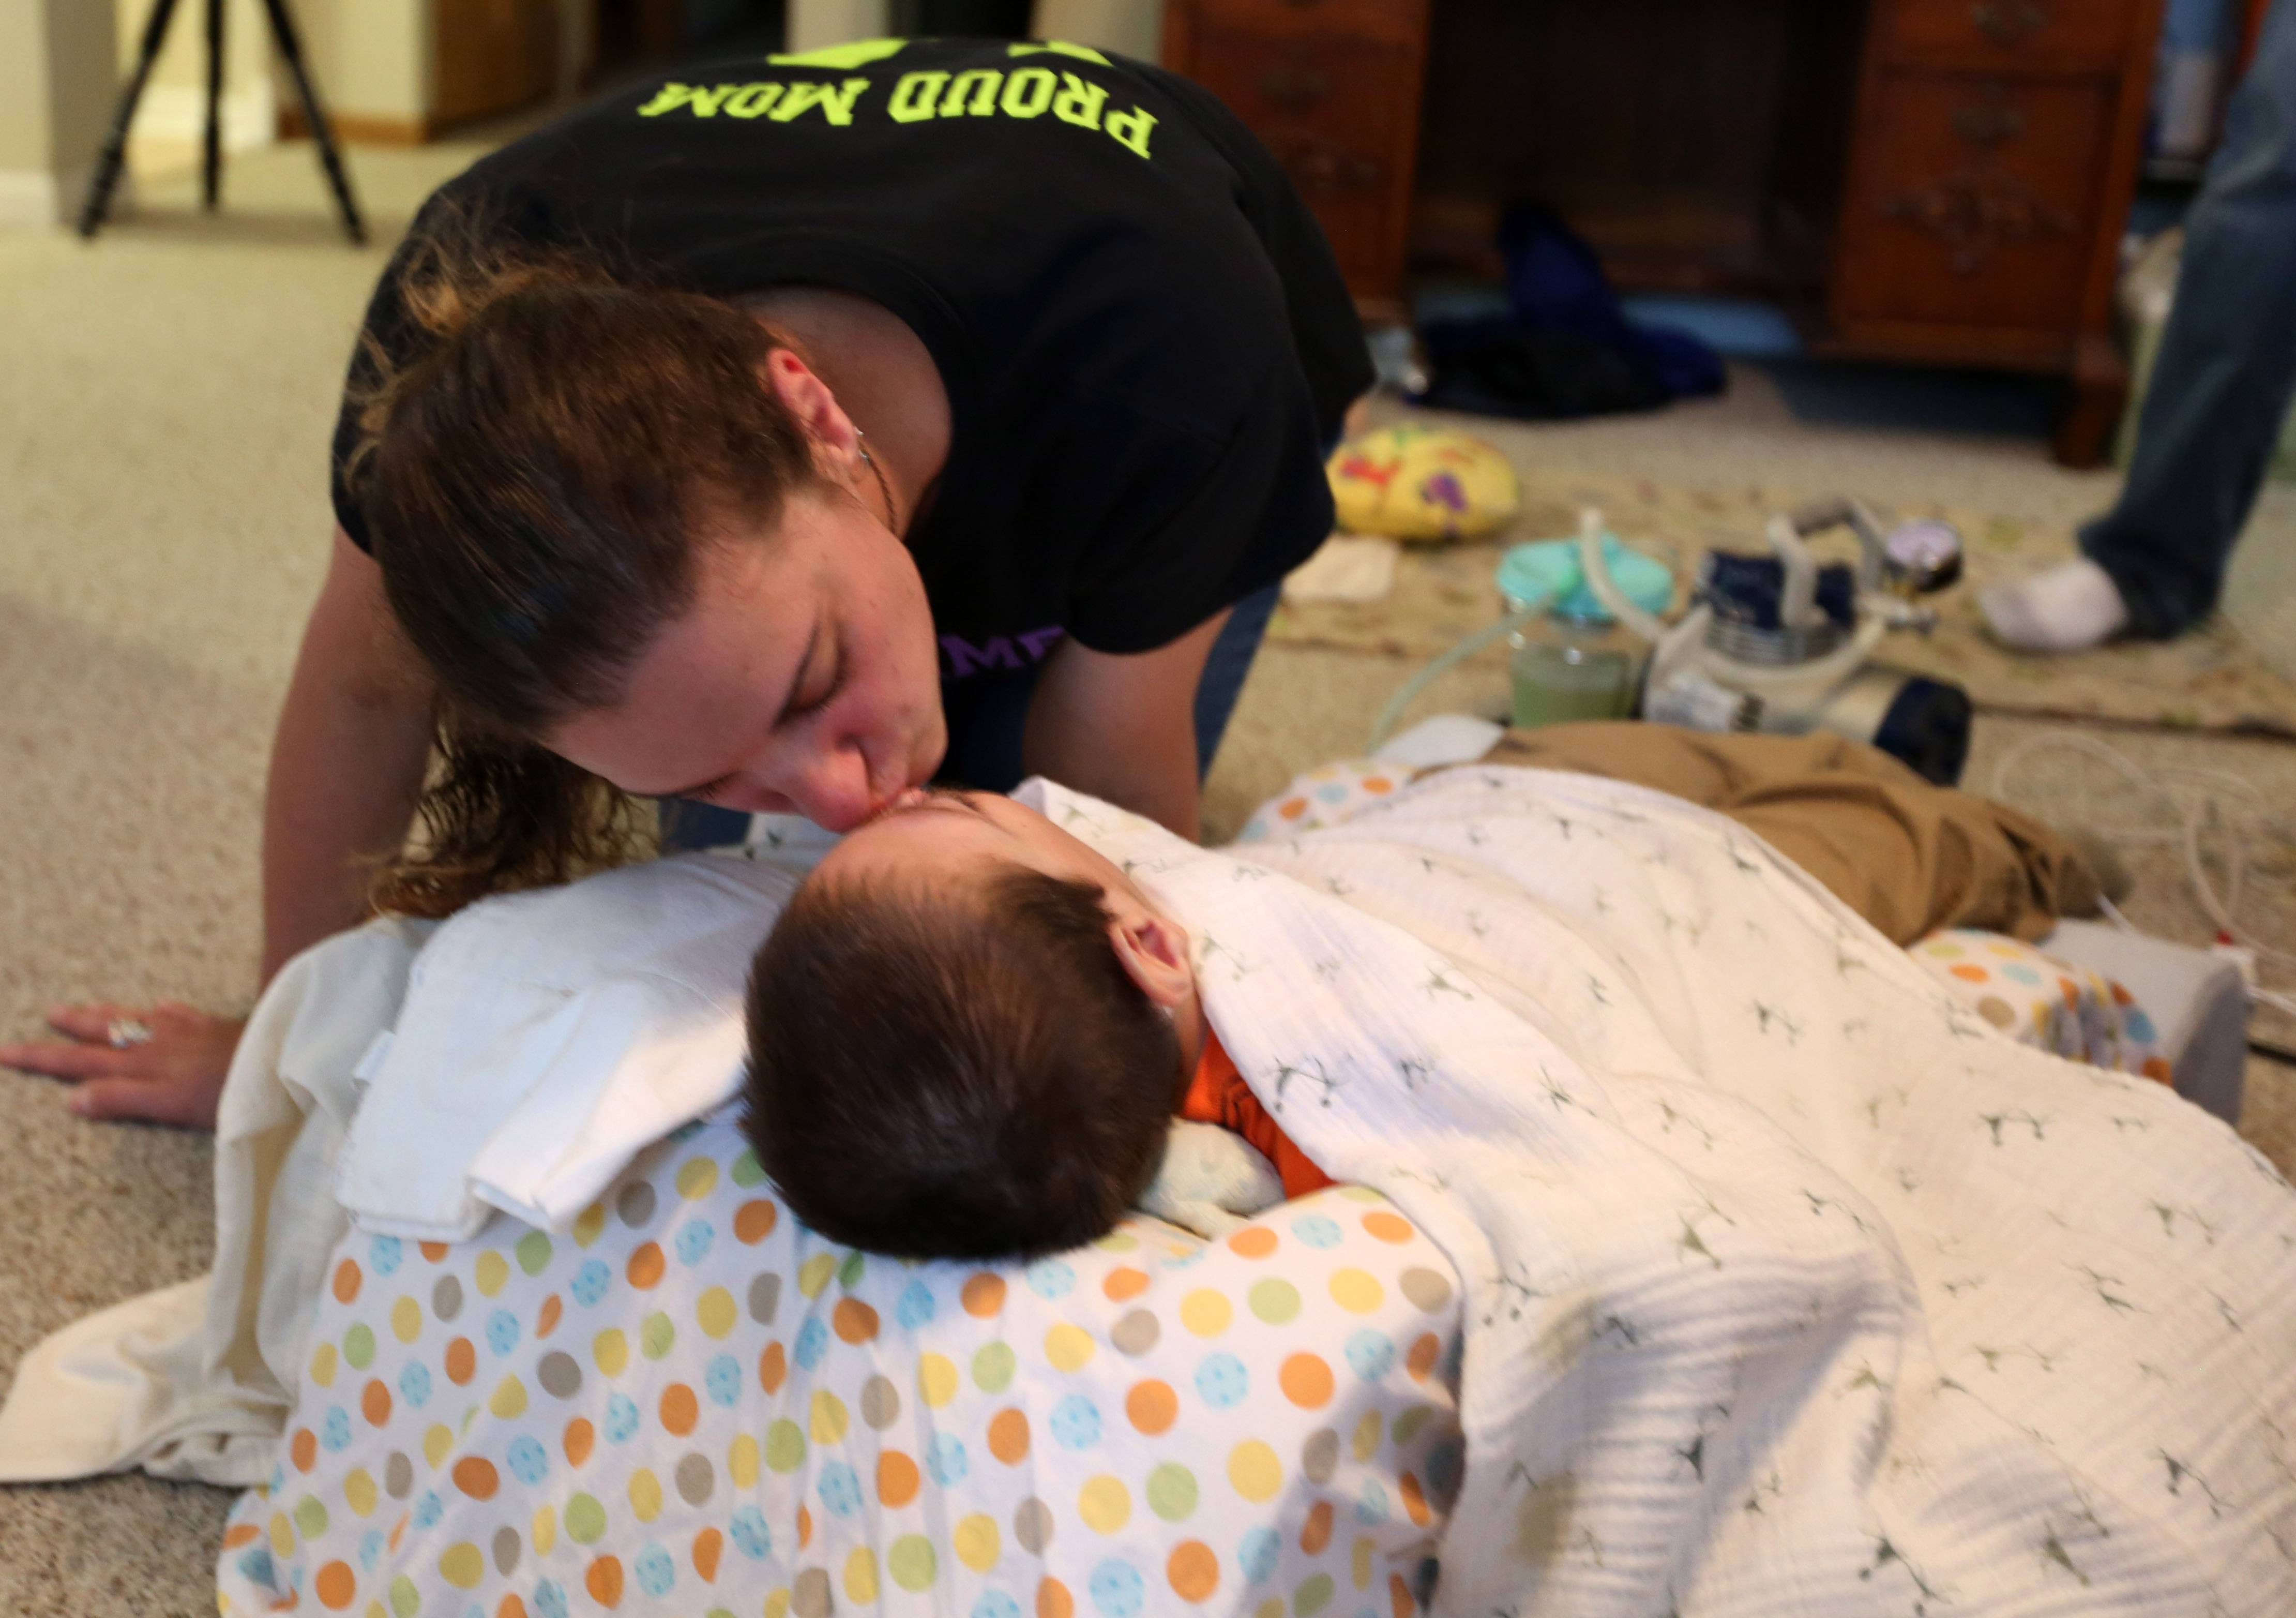 Celebrating the arrival of the family's new van, Stacy Fulkerson gives her son, James, a kiss in the driveway of their Schaumburg home. Suffering from a variety of disabilities, James, who turns 5 in August, outgrew his car seat in the family's old car.